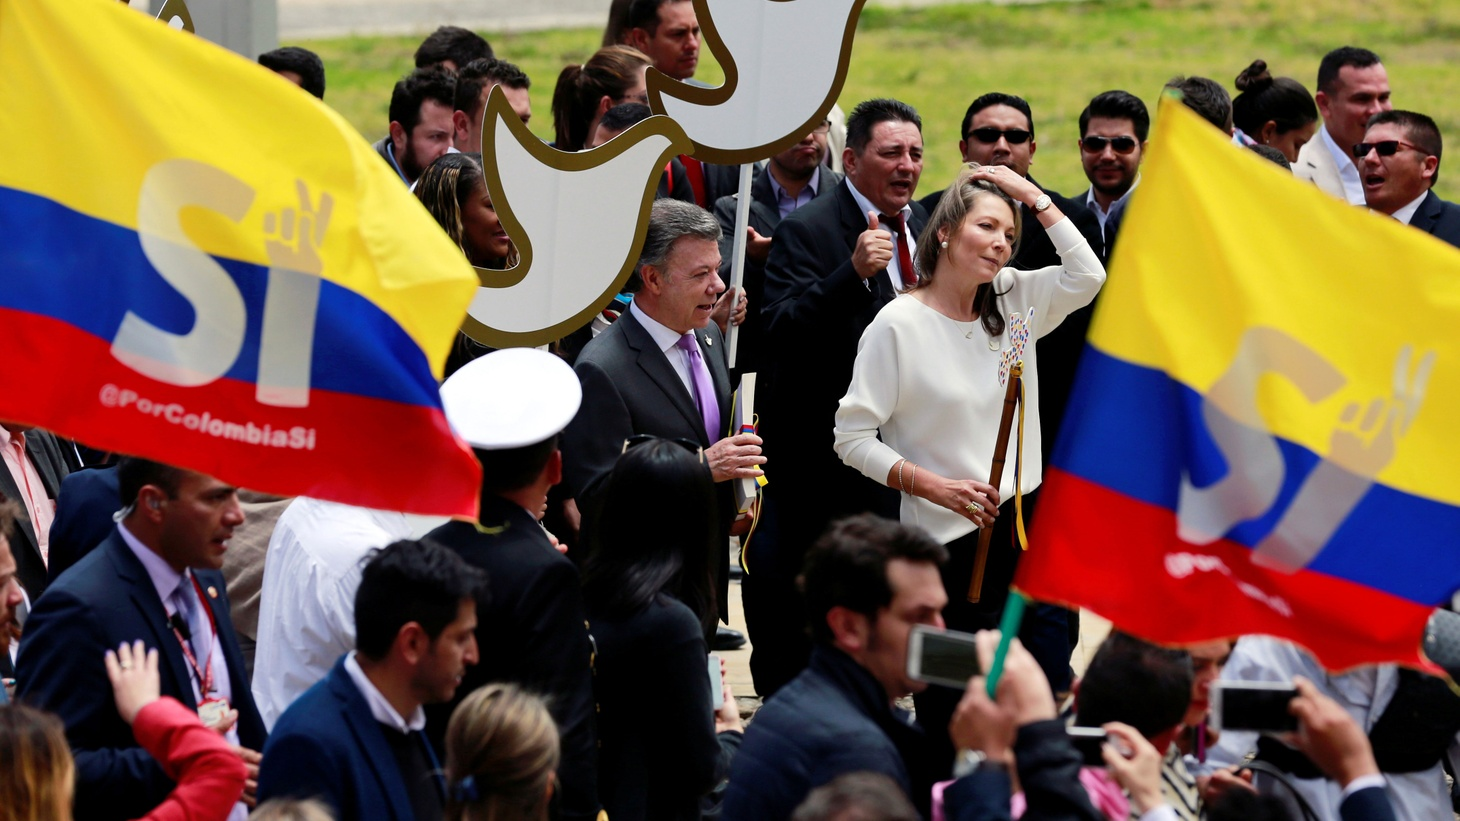 In Colombia, more than 50 years of bloody fighting marked by atrocities may finally have come to an end. But peace won't come easy when former combatants have to live side by side.